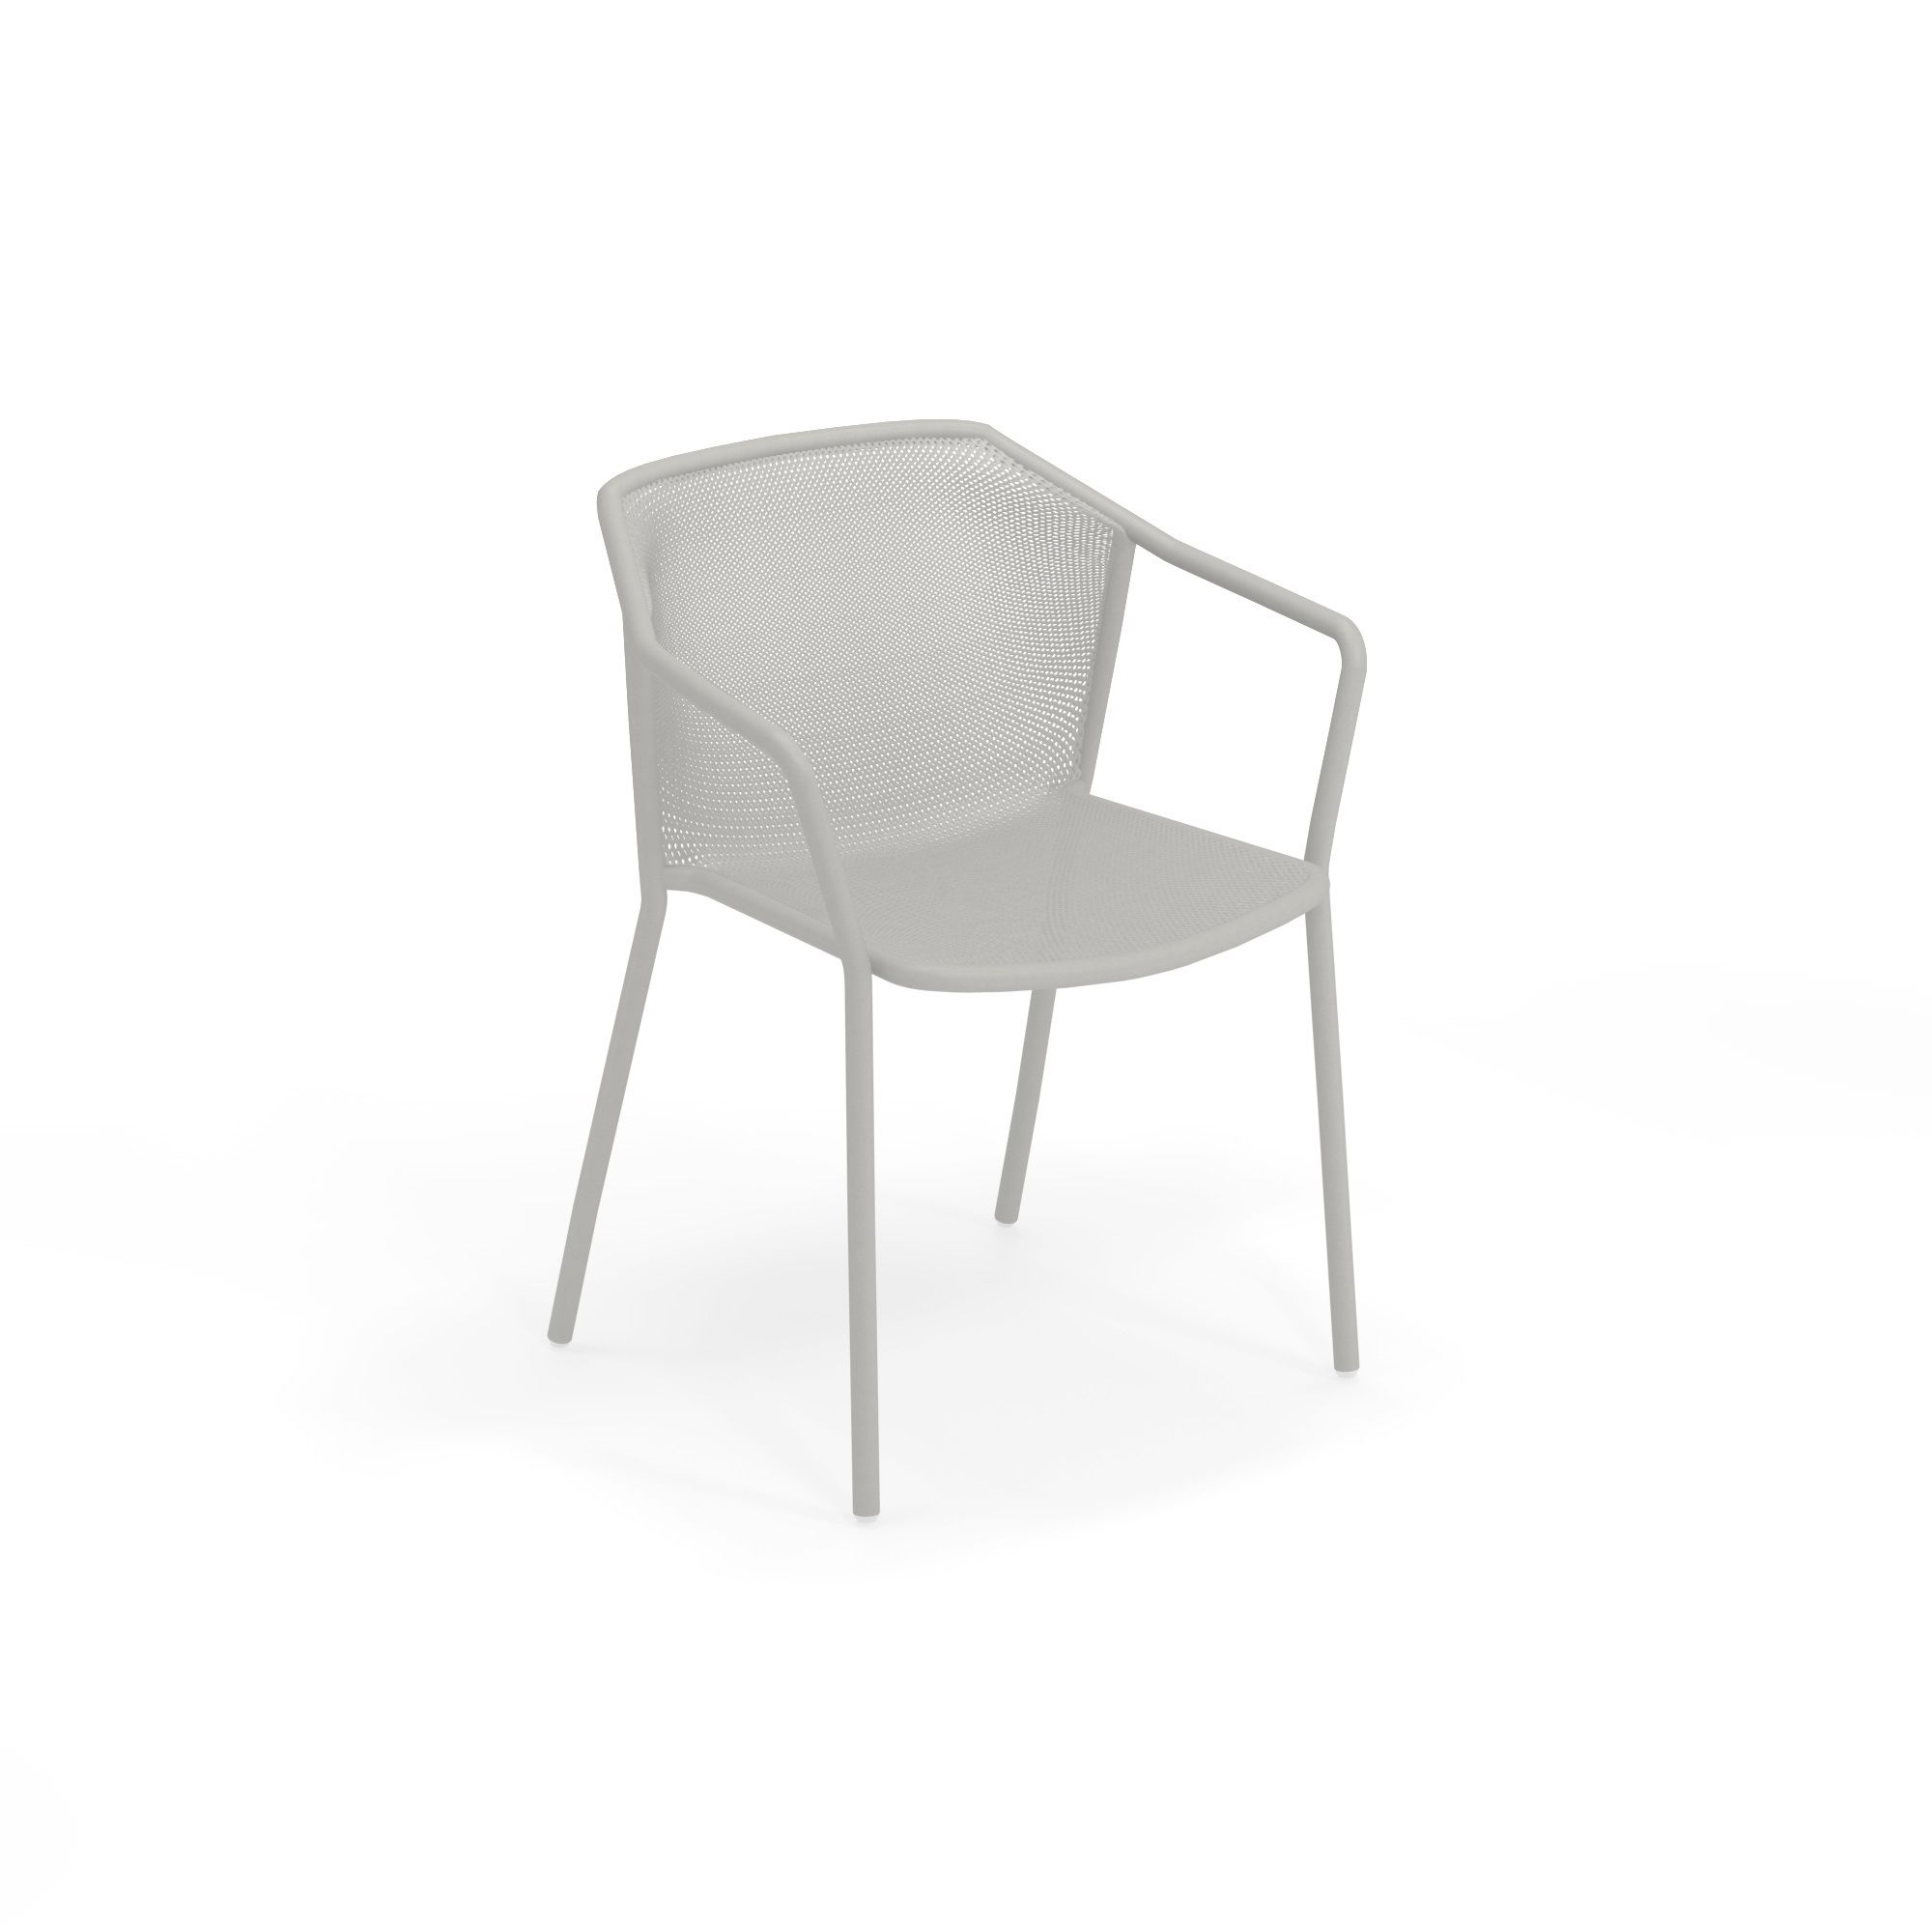 emuamericas, llc 522-73 chair, armchair, stacking, outdoor